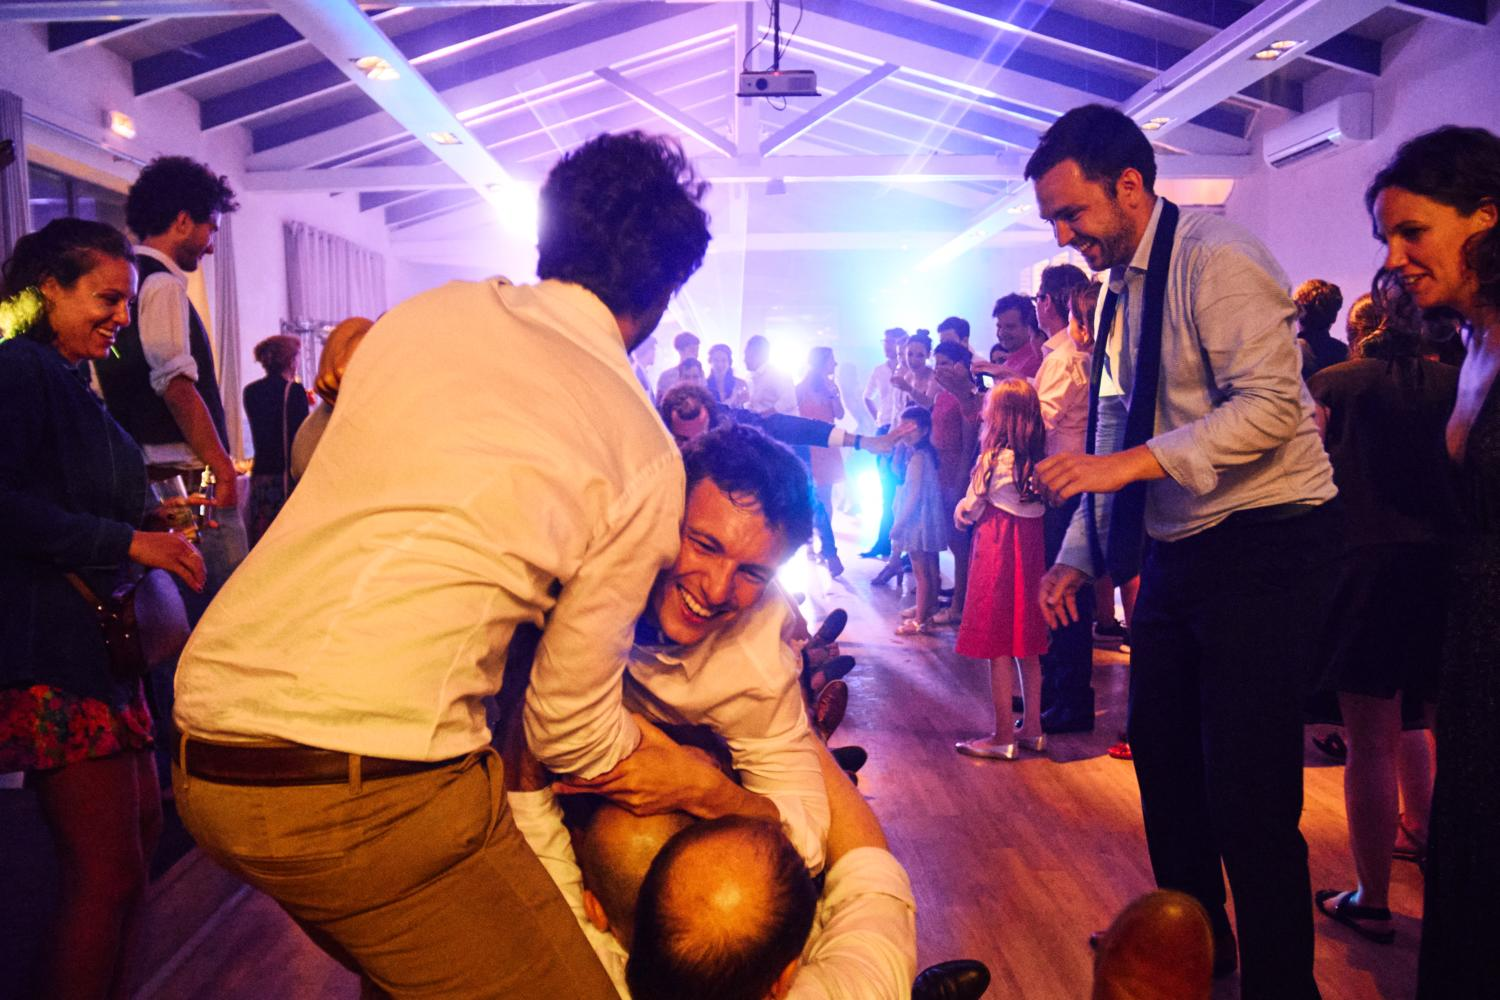 A man crowdsurfs at a wedding in France